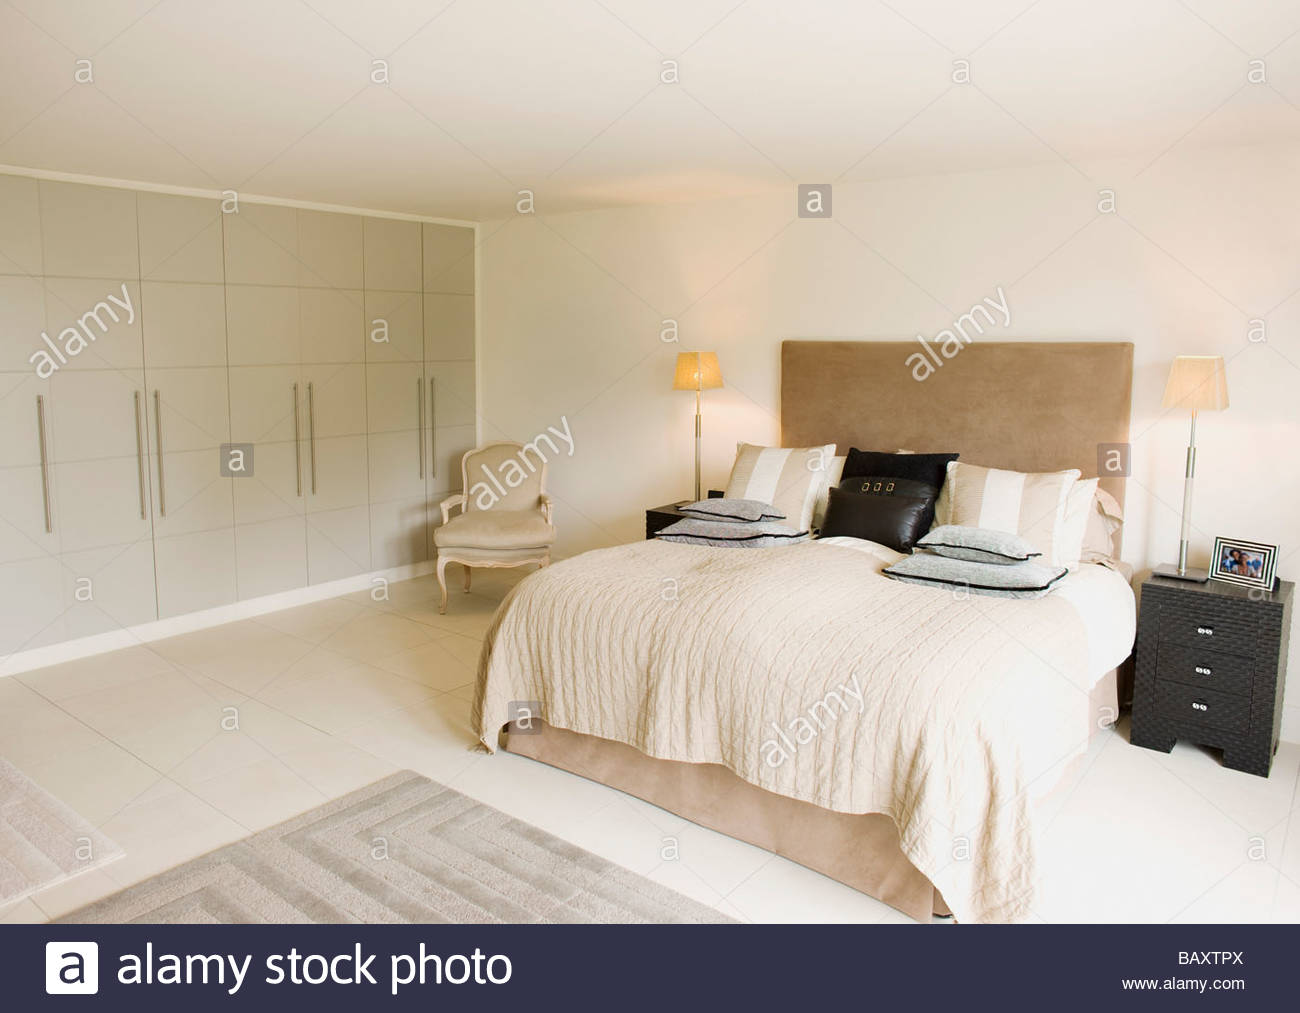 Interior Of Off White Bedroom Stock Photos & Interior Of Off ...